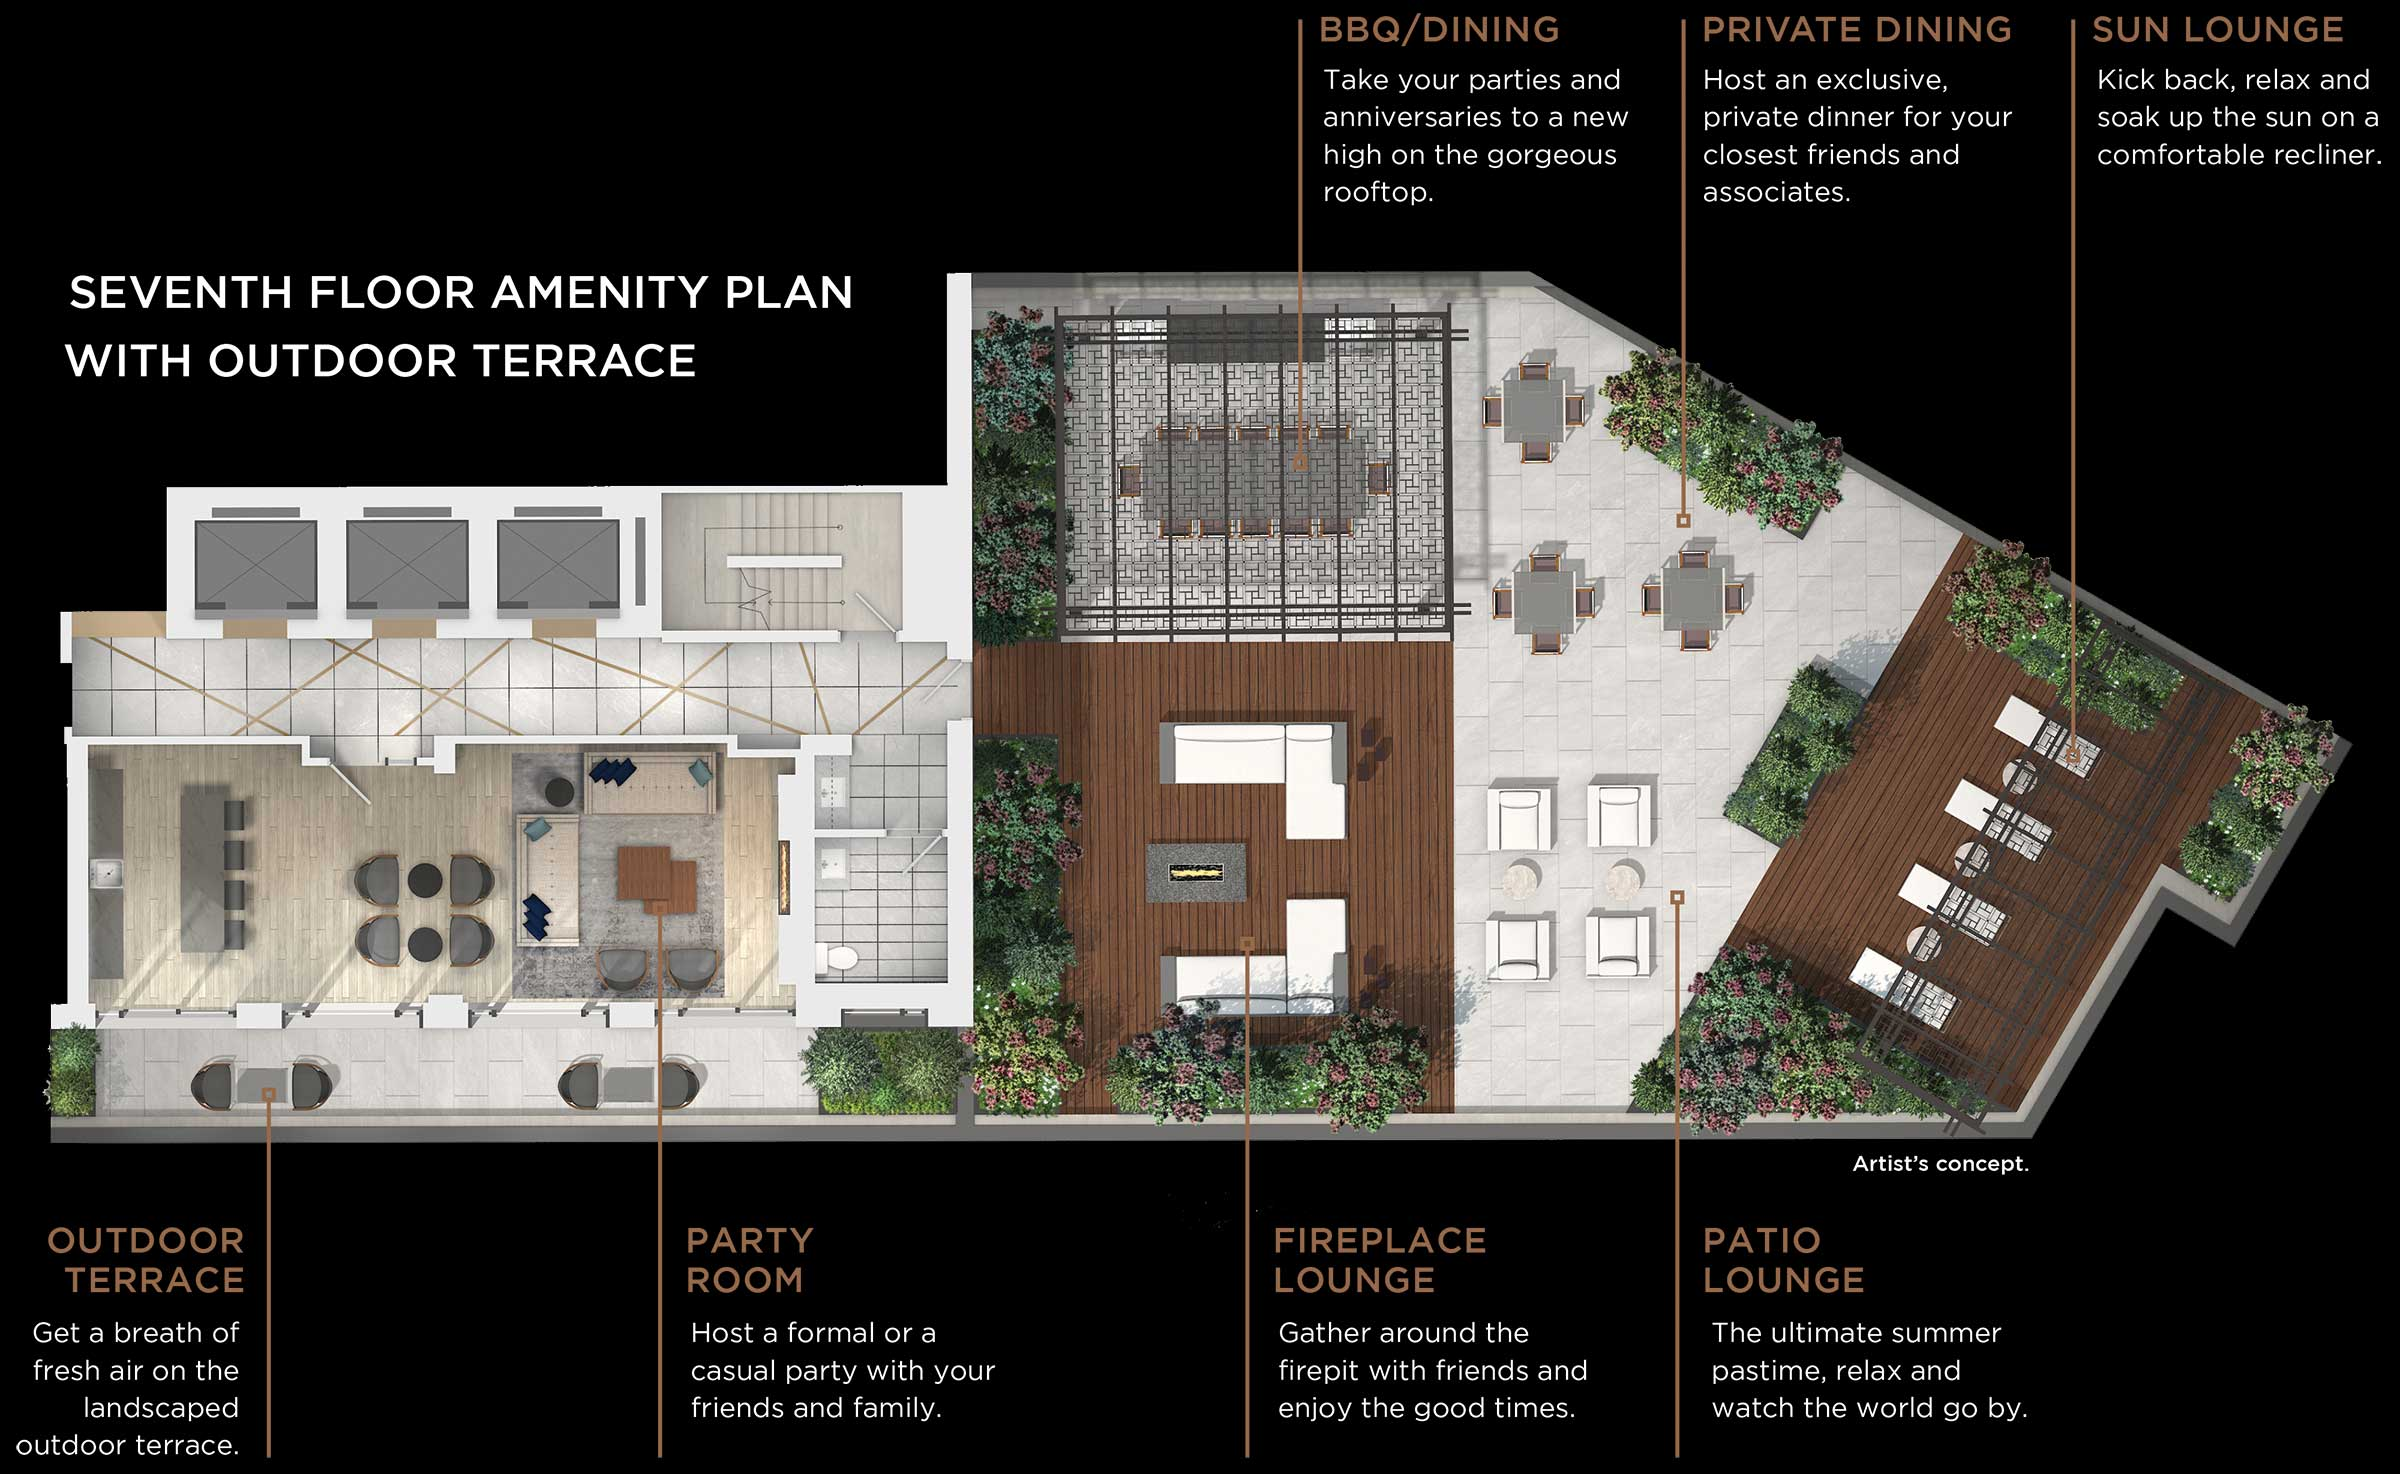 Seventh Floor Amenity Plan Without Terrace